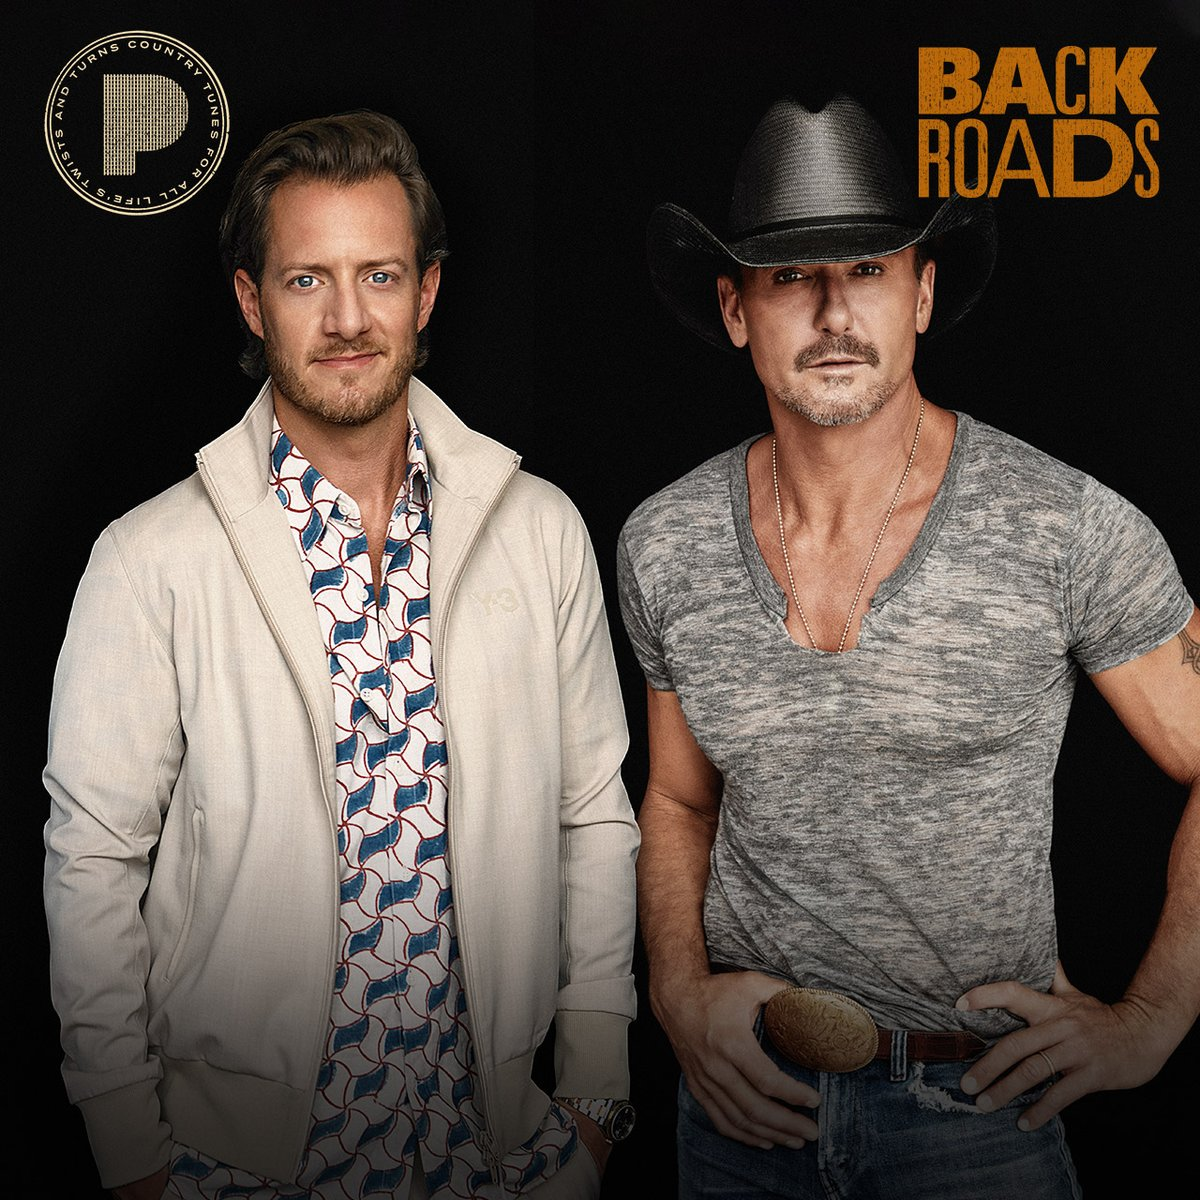 Replying to @TheTimMcGraw: #UNDIVDED is now playing on @Pandora's Backroads Radio! Turn it up here: